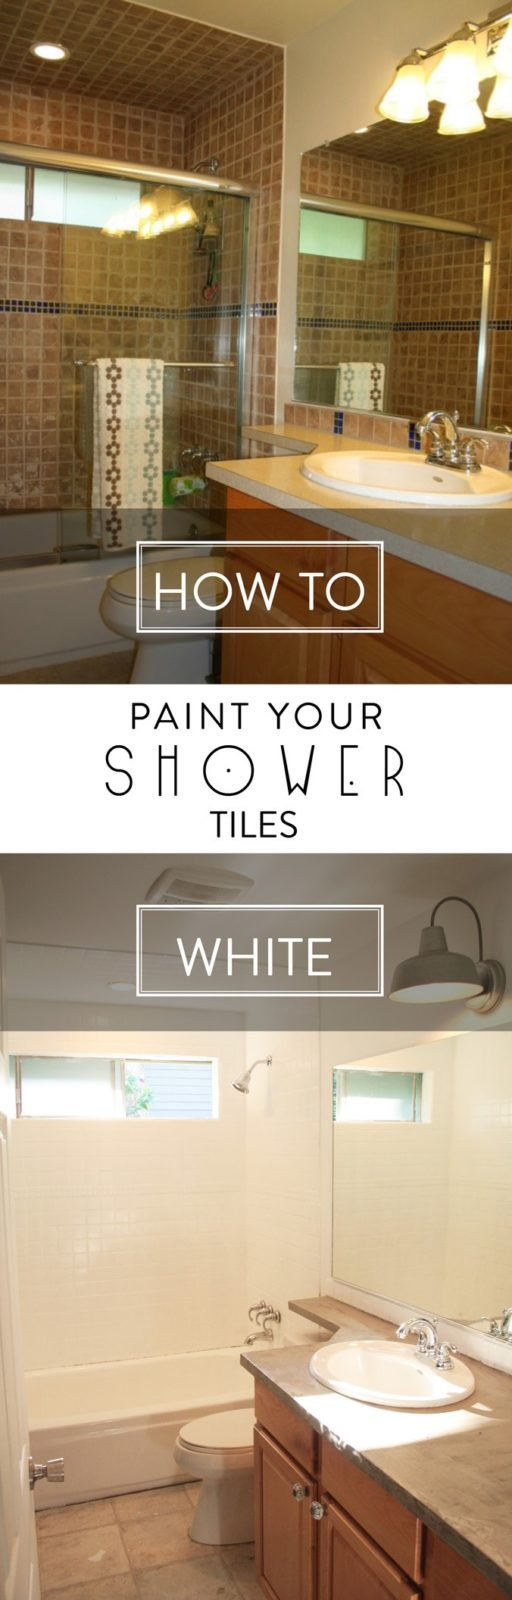 MUST PIN! Learn to paint shower tiles! Transform your shower on a budget! Full tutorial by Petite Modern Life for Designer Trapped in a Lawyer's Body.